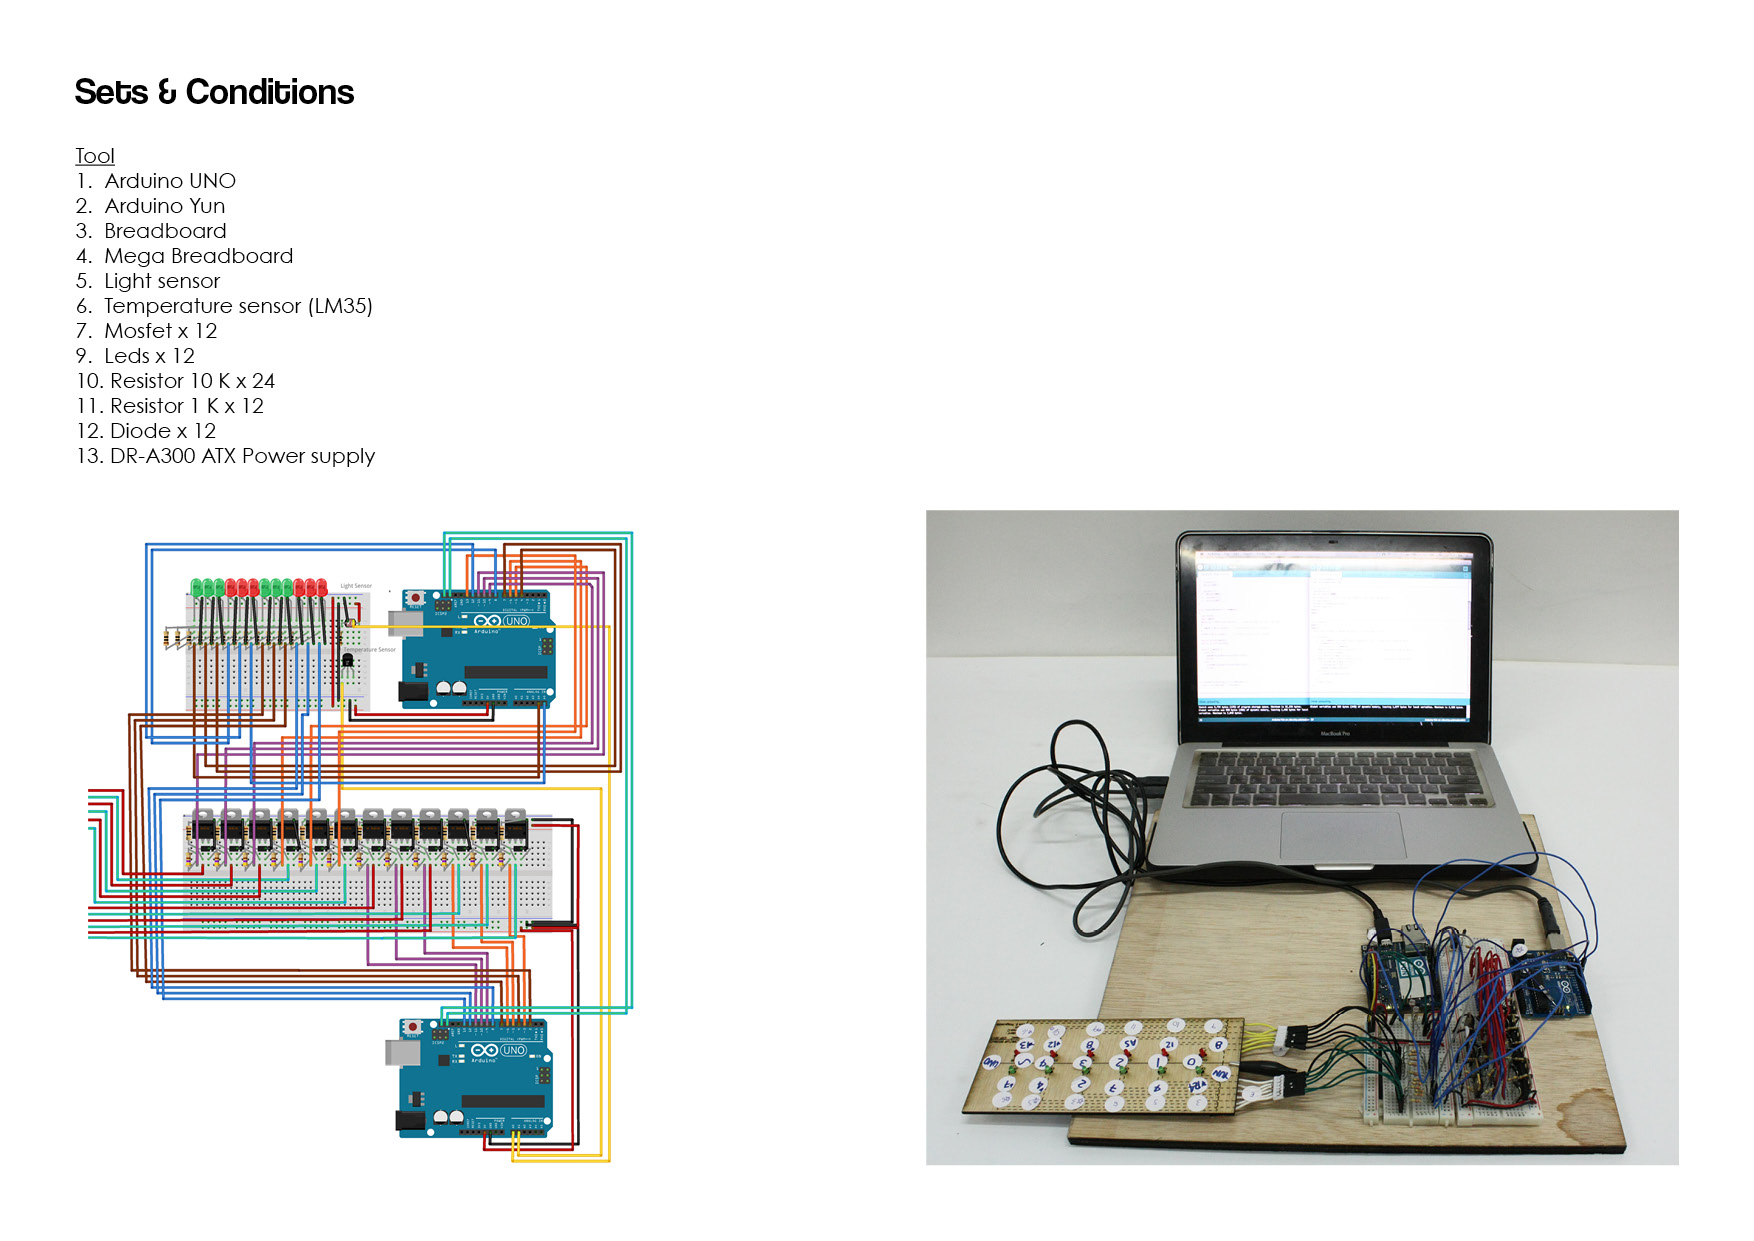 https://blog.arduino.cc/wp-content/uploads/2014/01/arduino-web4.jpg